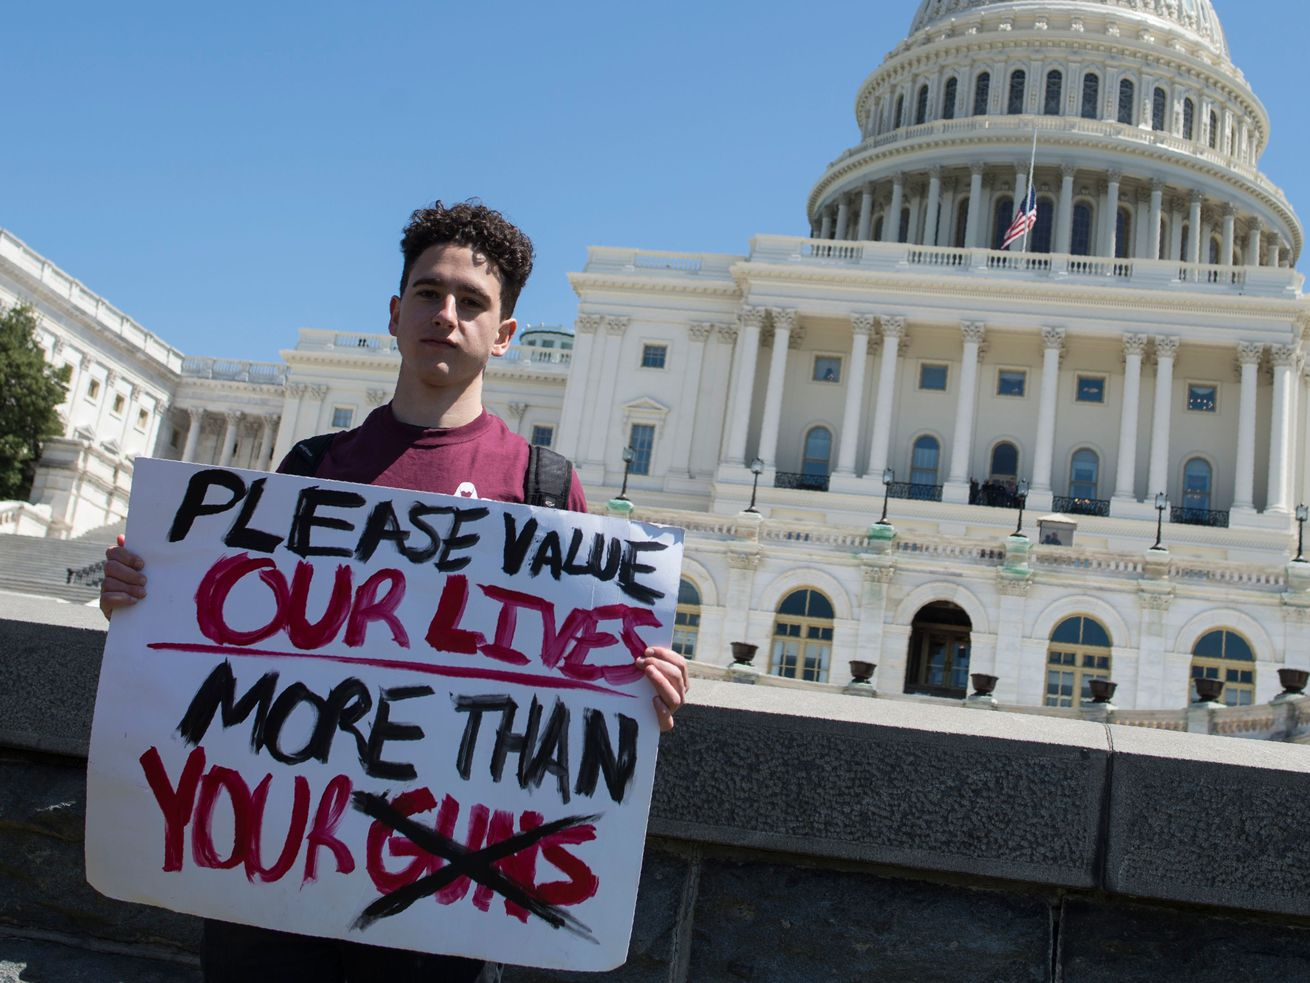 Amit Dadon, a graduate in 2017 from Marjory Stoneman Douglas High School, poses for a photo on the West Lawn of the U.S. Capitol after rallying in April 2018 with several hundred fellow students to call for stricter gun laws in Washington, D.C.